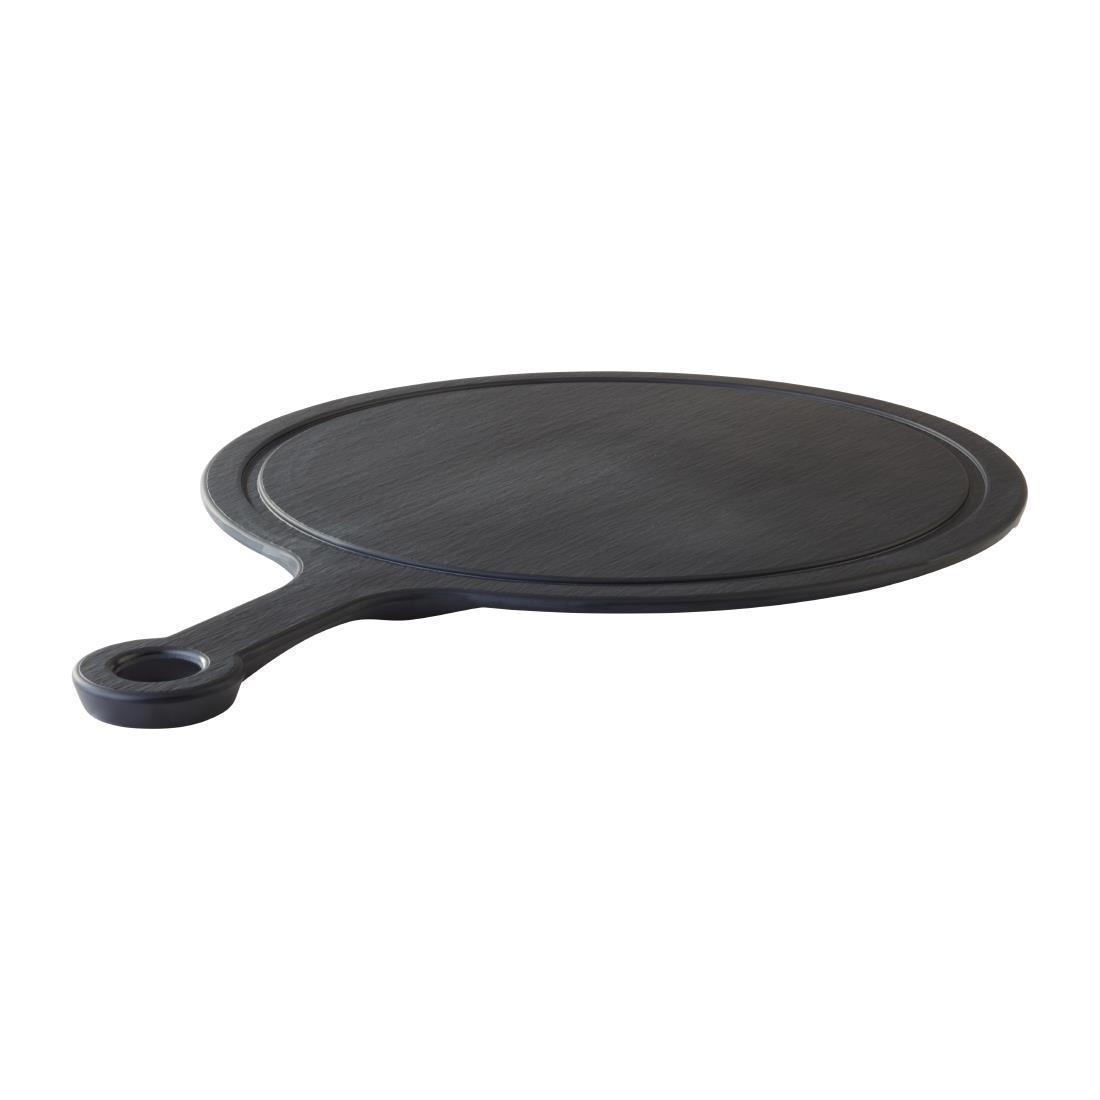 APS Slate Melamine Handled Platter 340 mm - Each - CS125